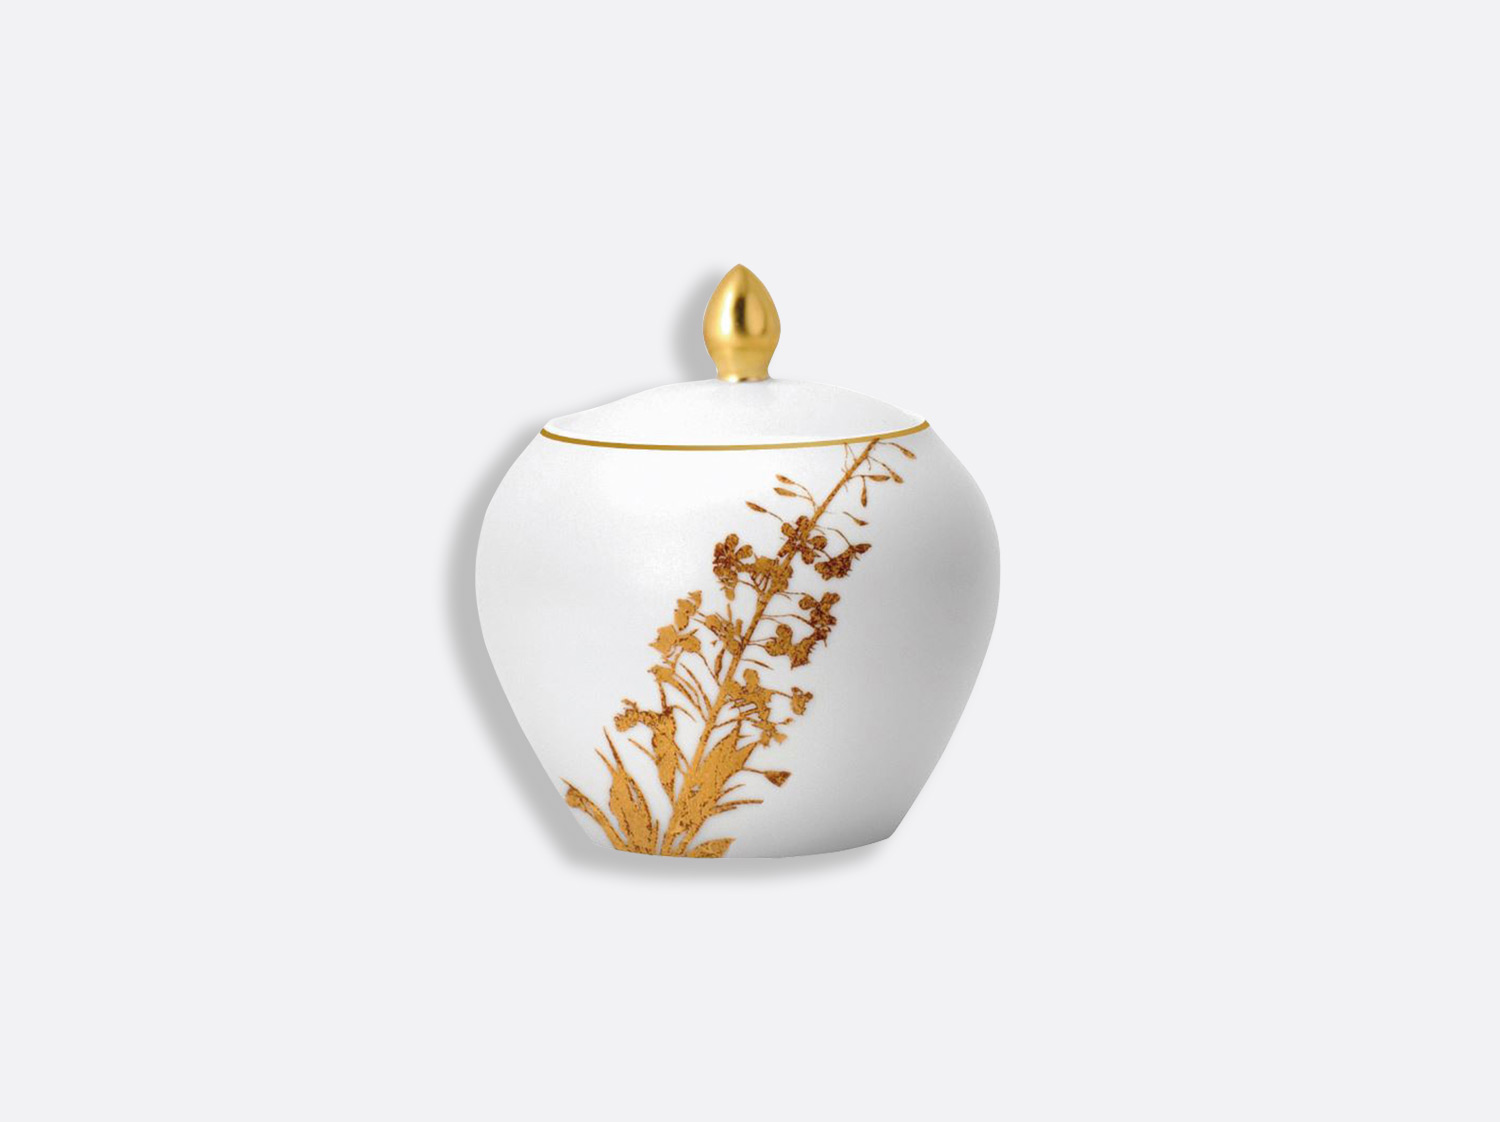 China Sucrier 12 tasses of the collection Vegetal gold | Bernardaud